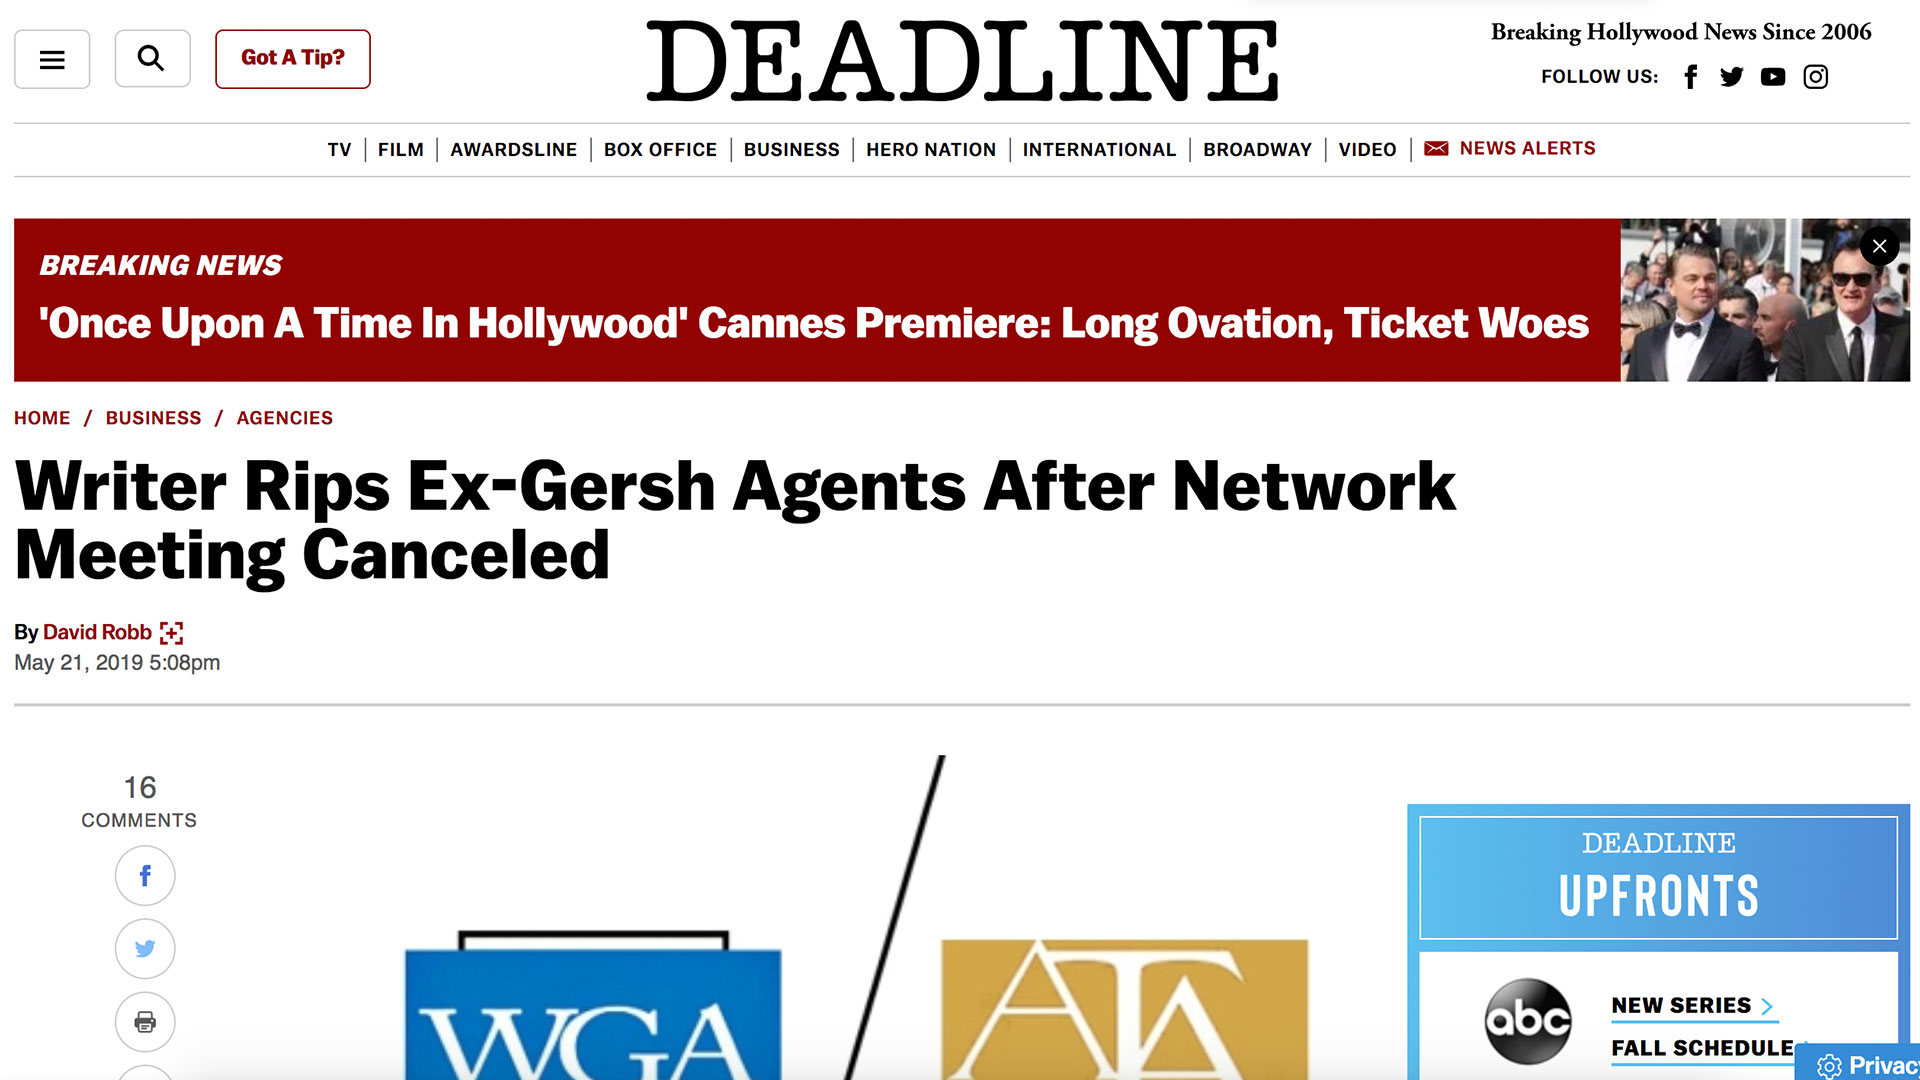 Fairness Rocks News Writer Rips Ex-Gersh Agents After Network Meeting Canceled